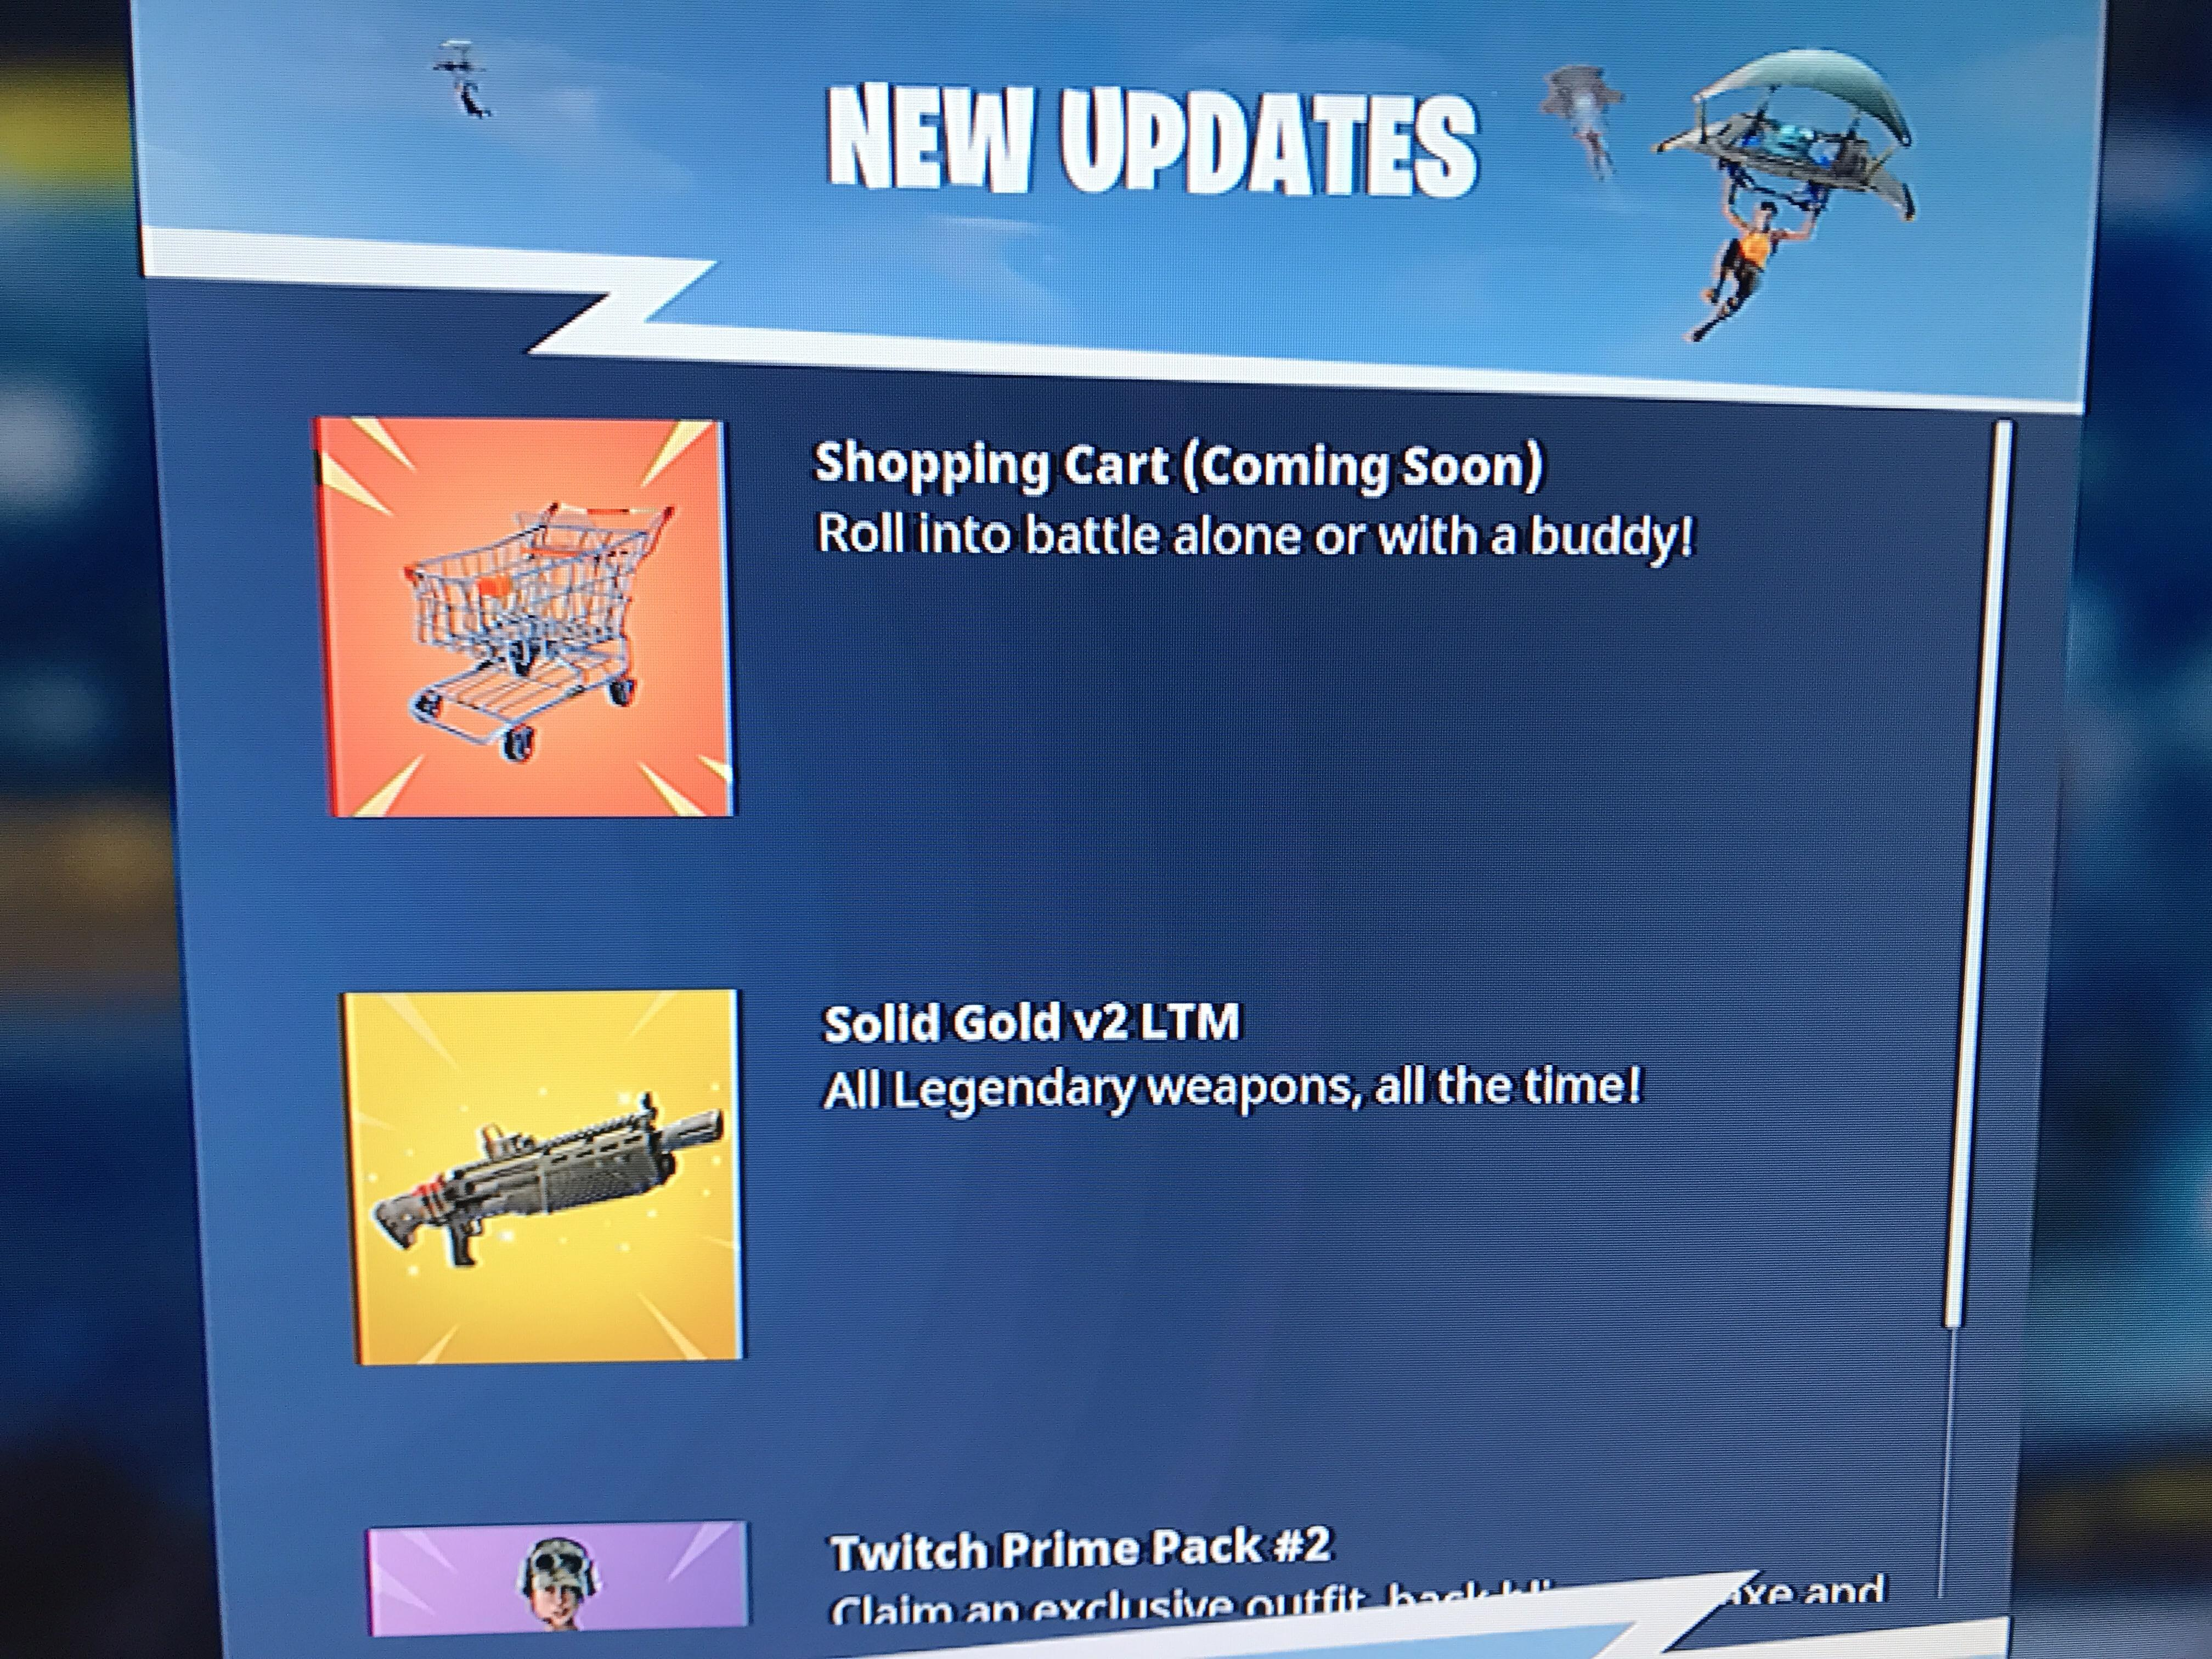 Ride Into Battle Royale With The Upcoming Fortnite Shopping